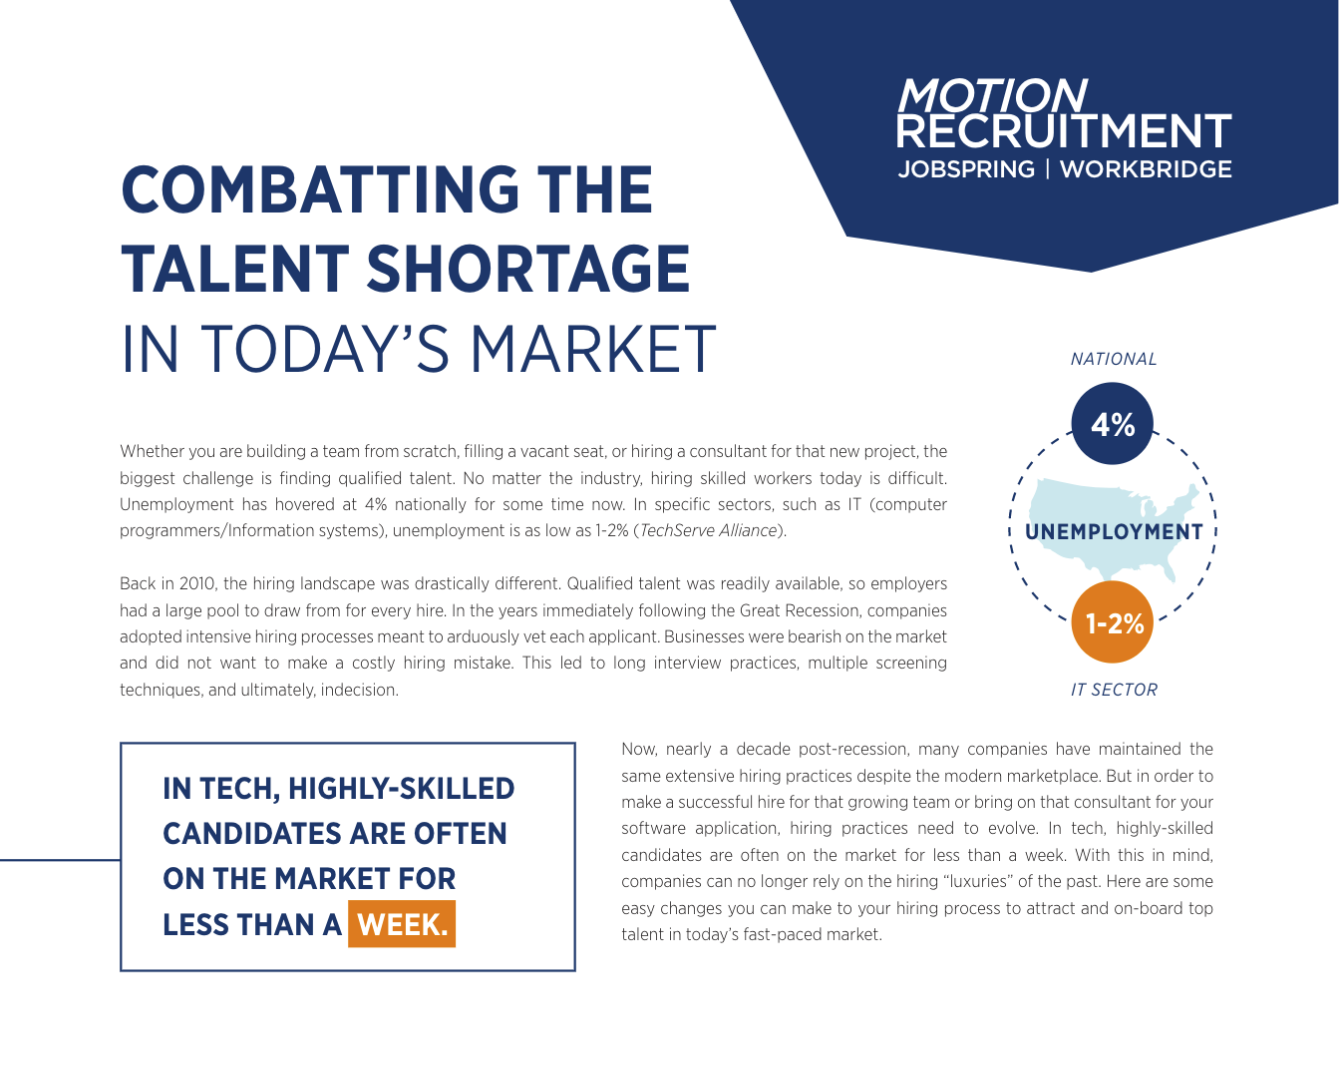 Combatting the talent shortage in today's market